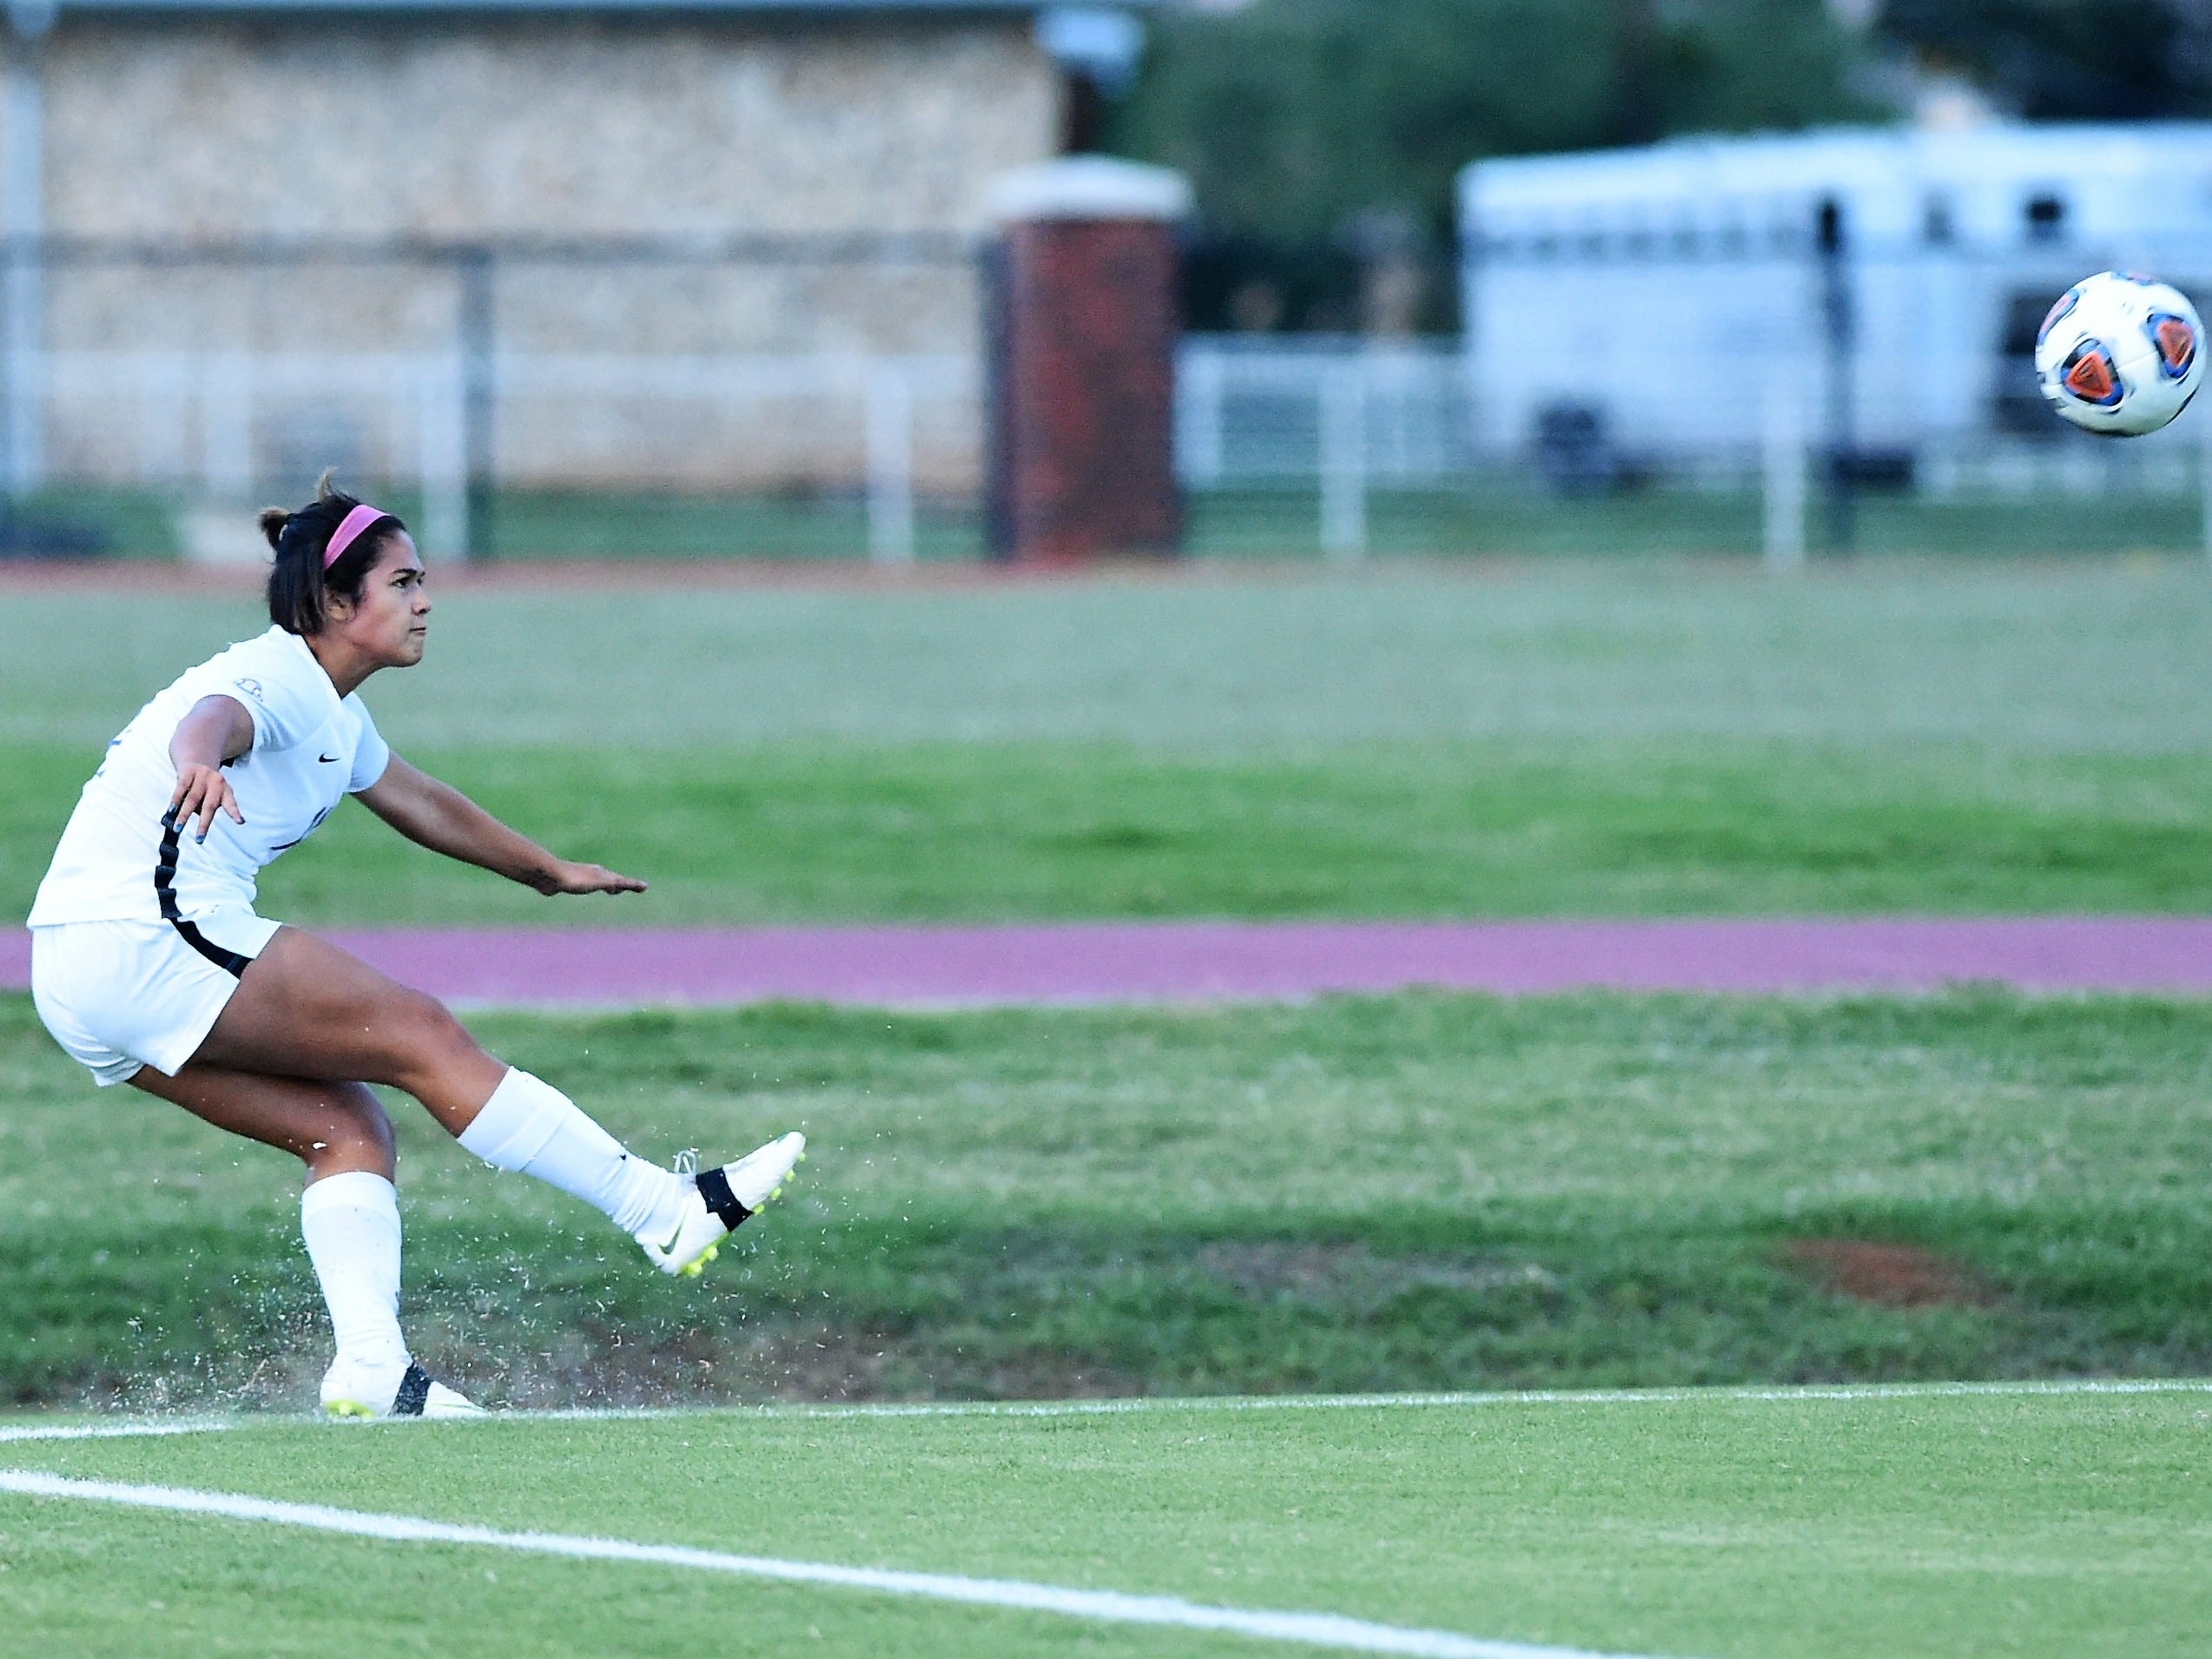 Hardin-Simmons' Avery Lara (11) takes a corner kick against Howard Payne at the HSU Soccer Complex on Thursday, Oct. 11, 2018. The Cowgirls won 4-1.